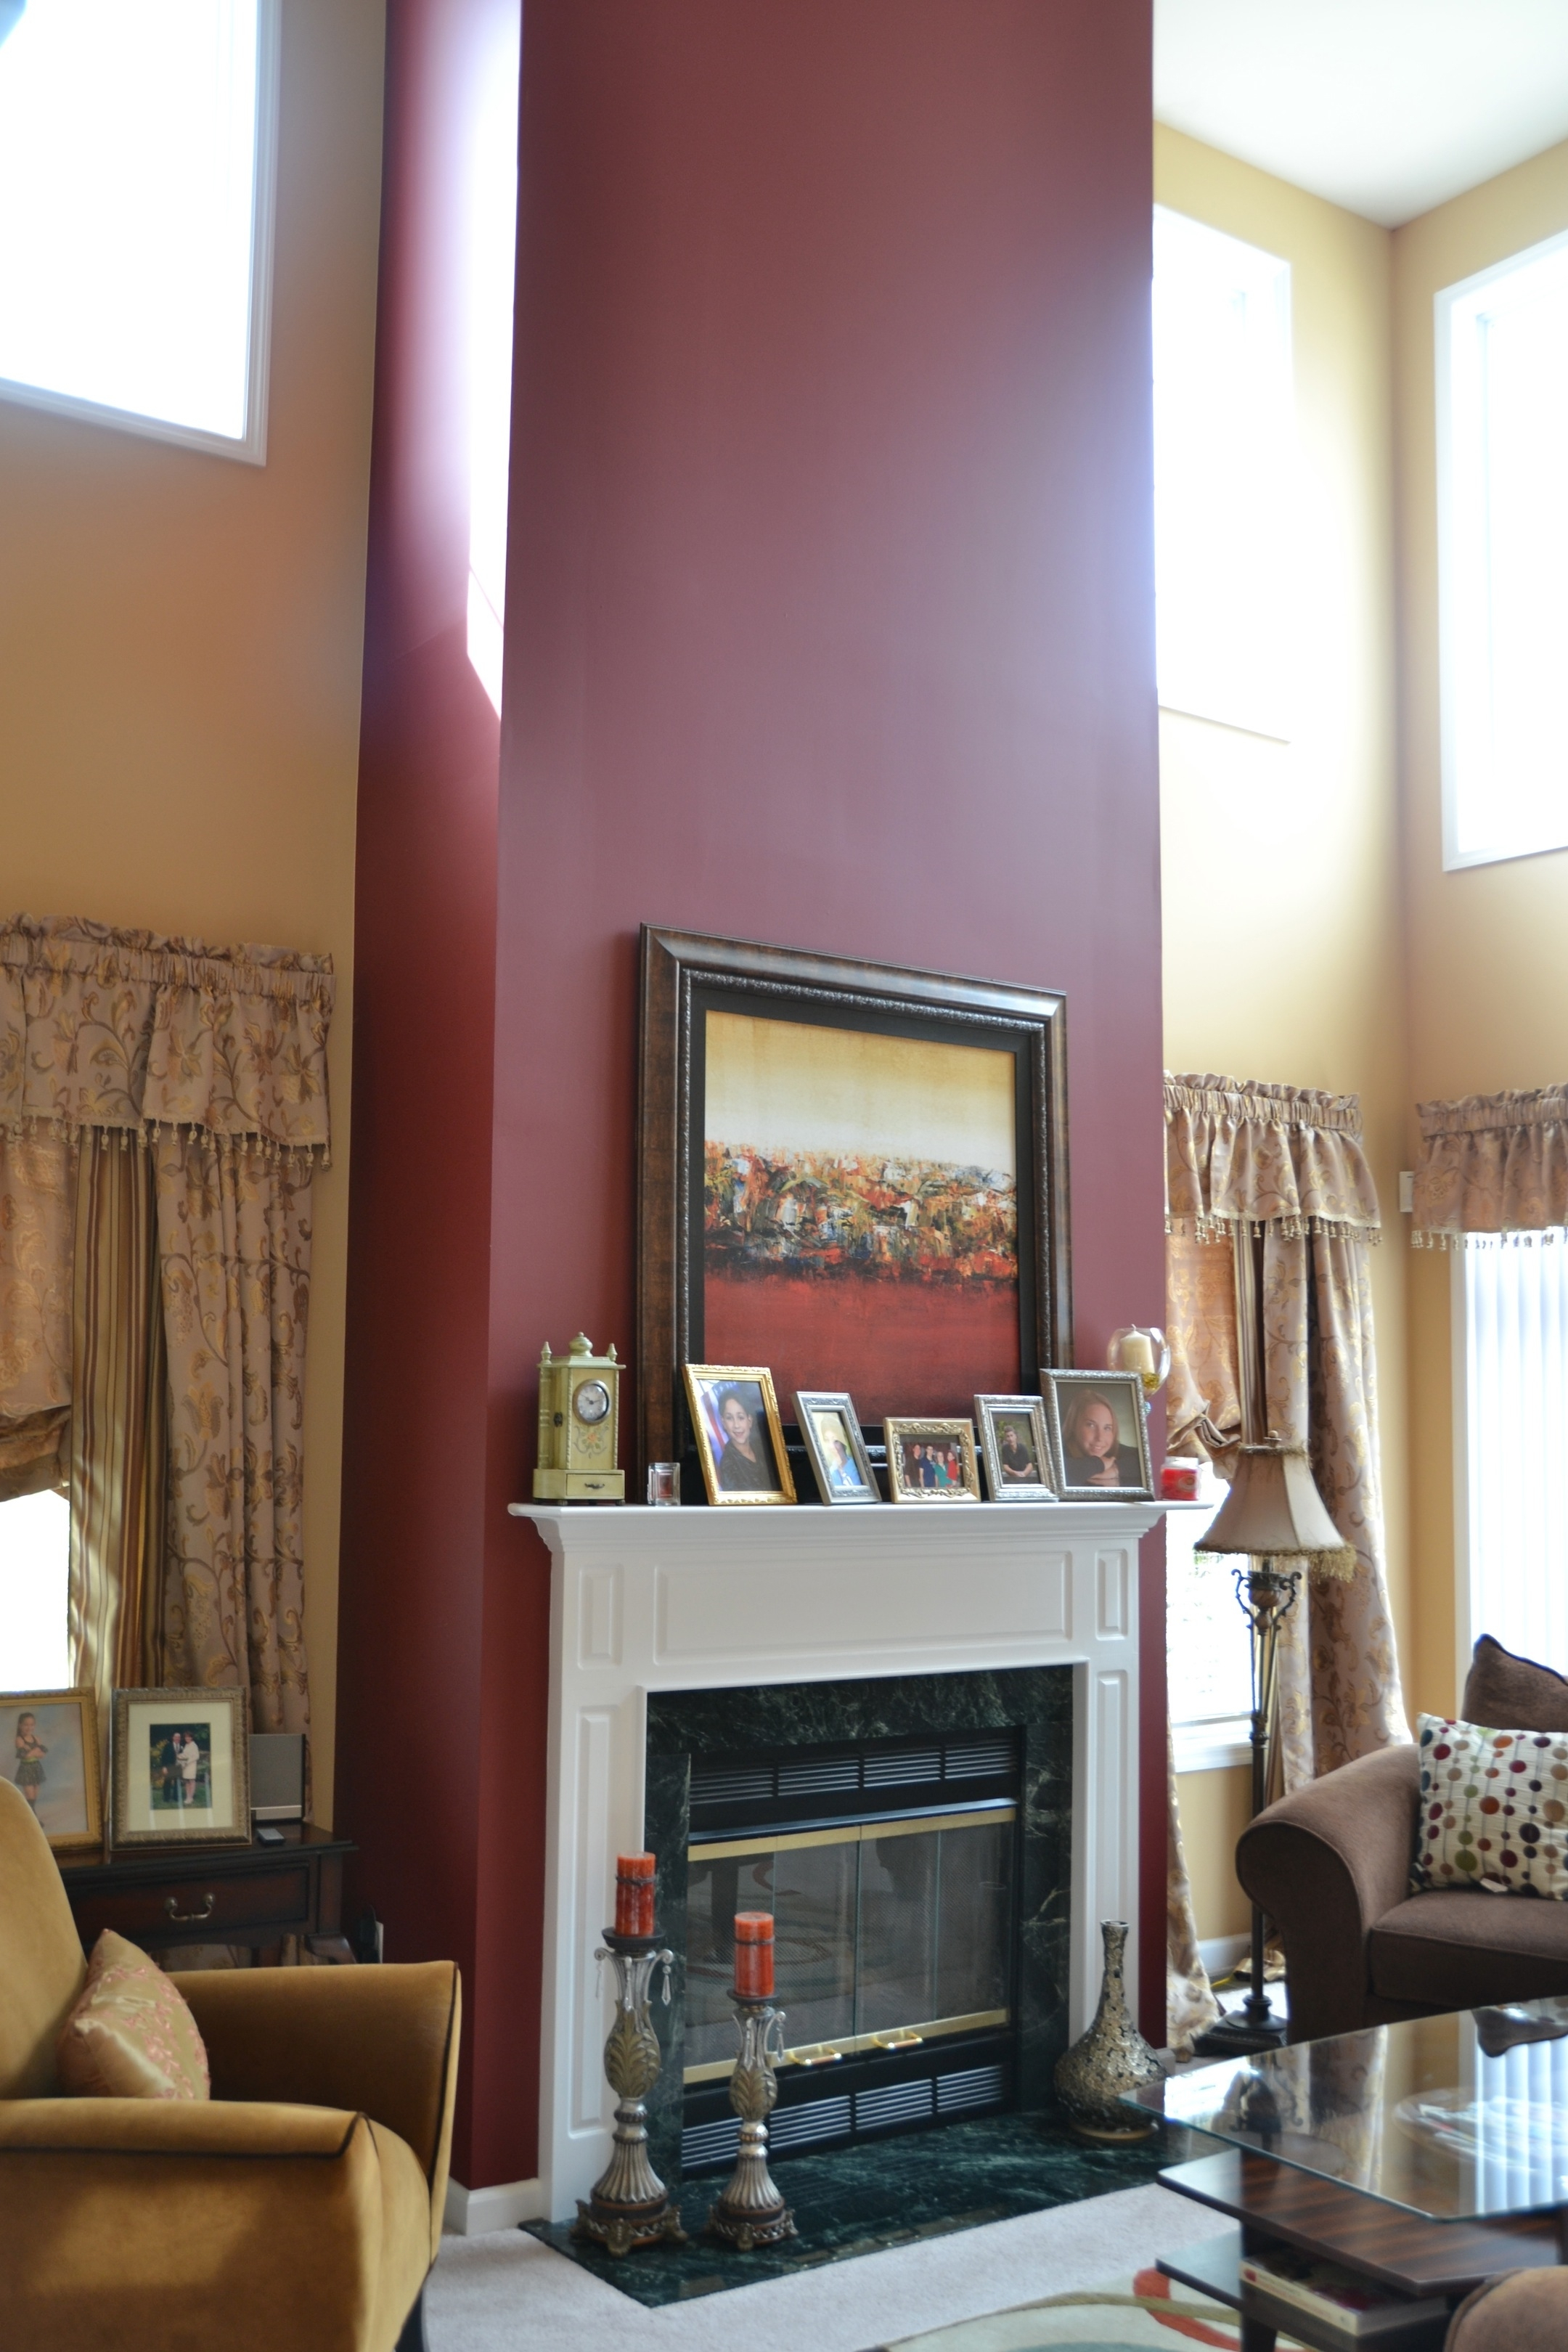 Accent Wall For Mantel/fireplace | |Home| Furnishings | Pinterest With Regard To Recent Fireplace Wall Accents (View 2 of 15)